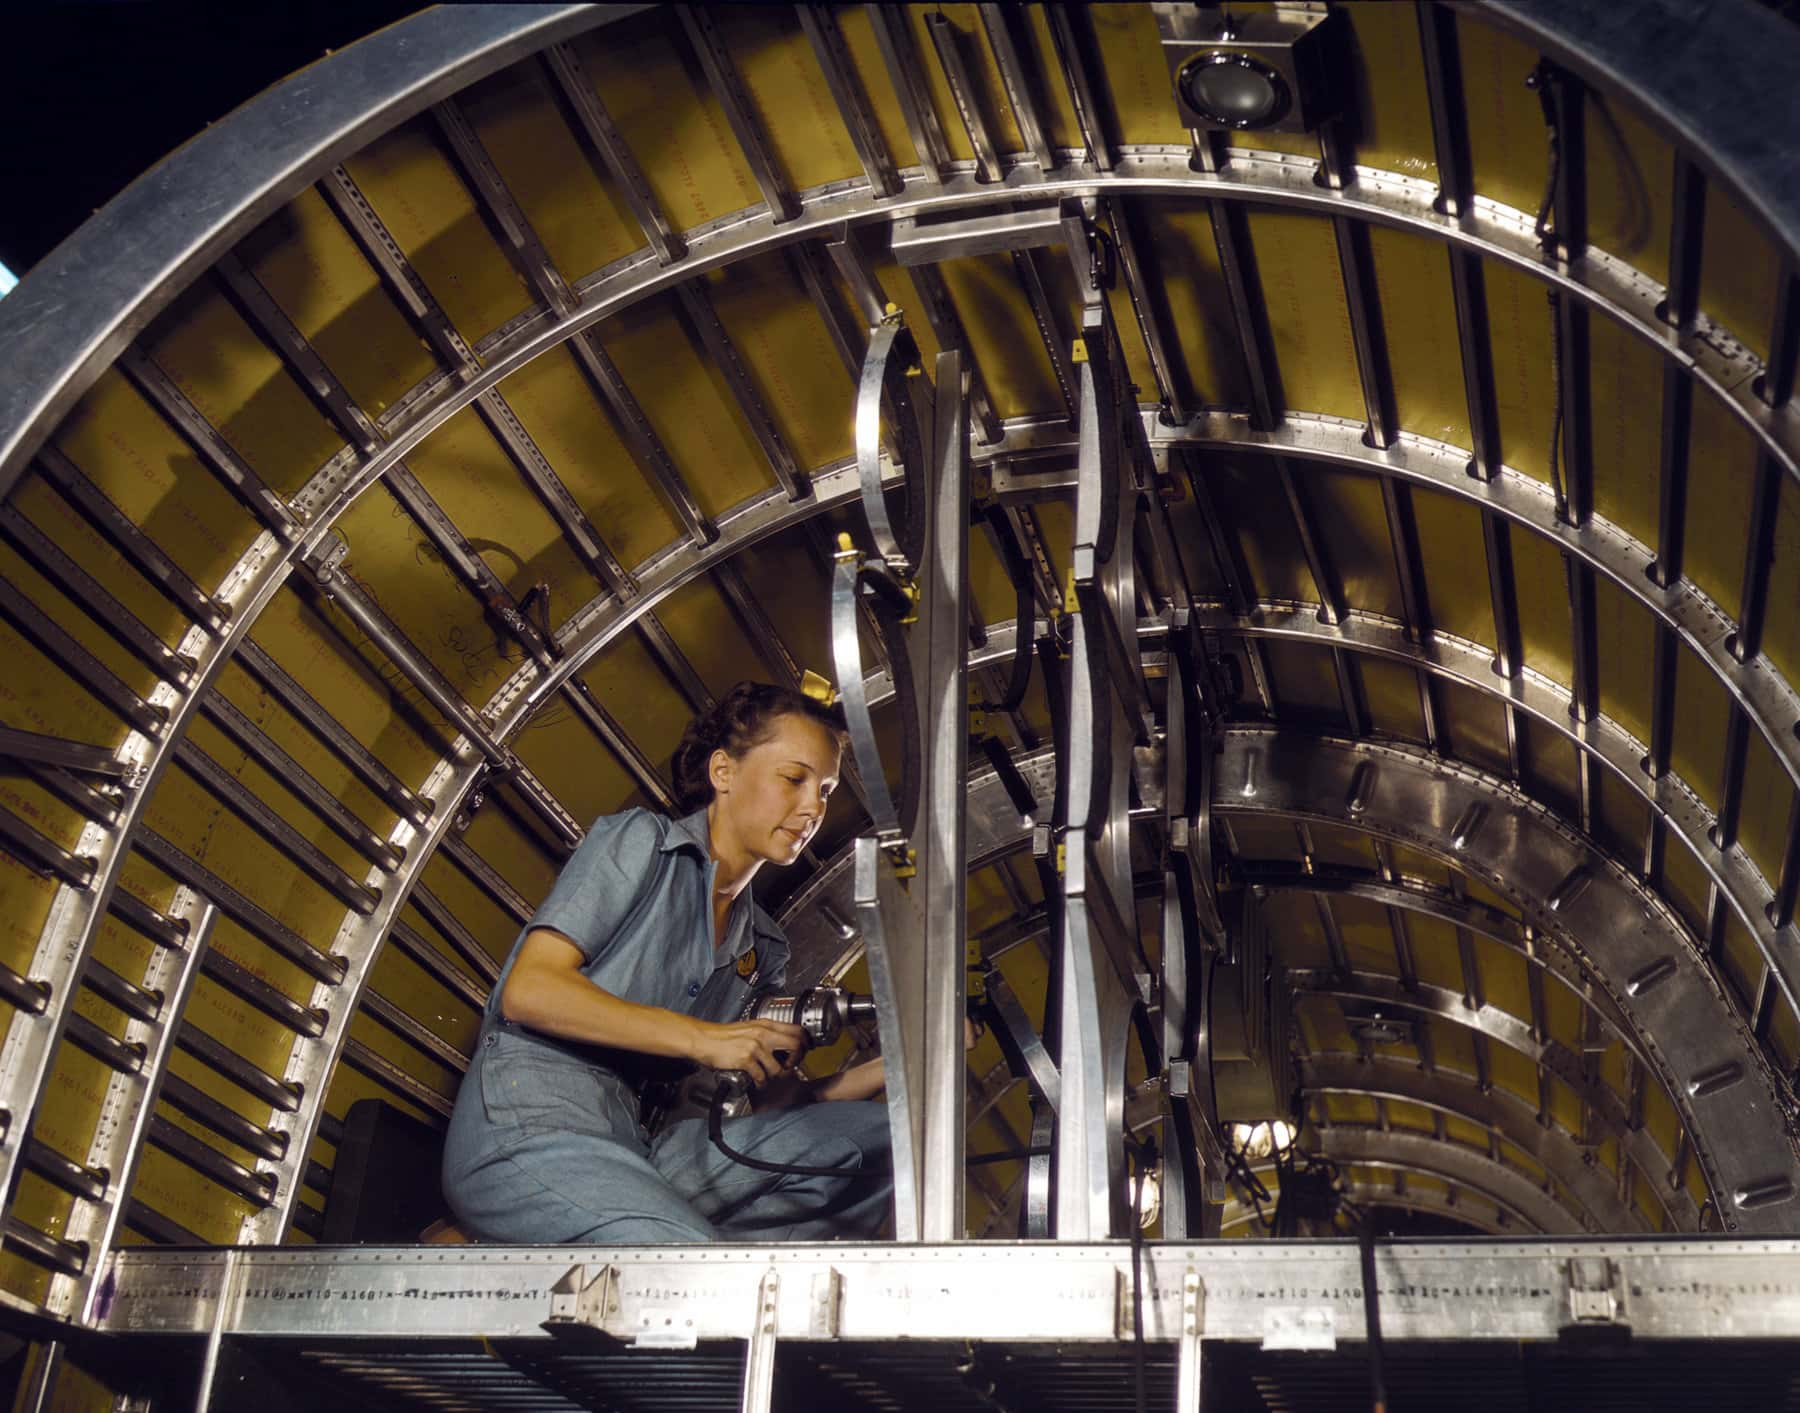 Building WWII fighter planes in the 1940s - Installing oxygen racks